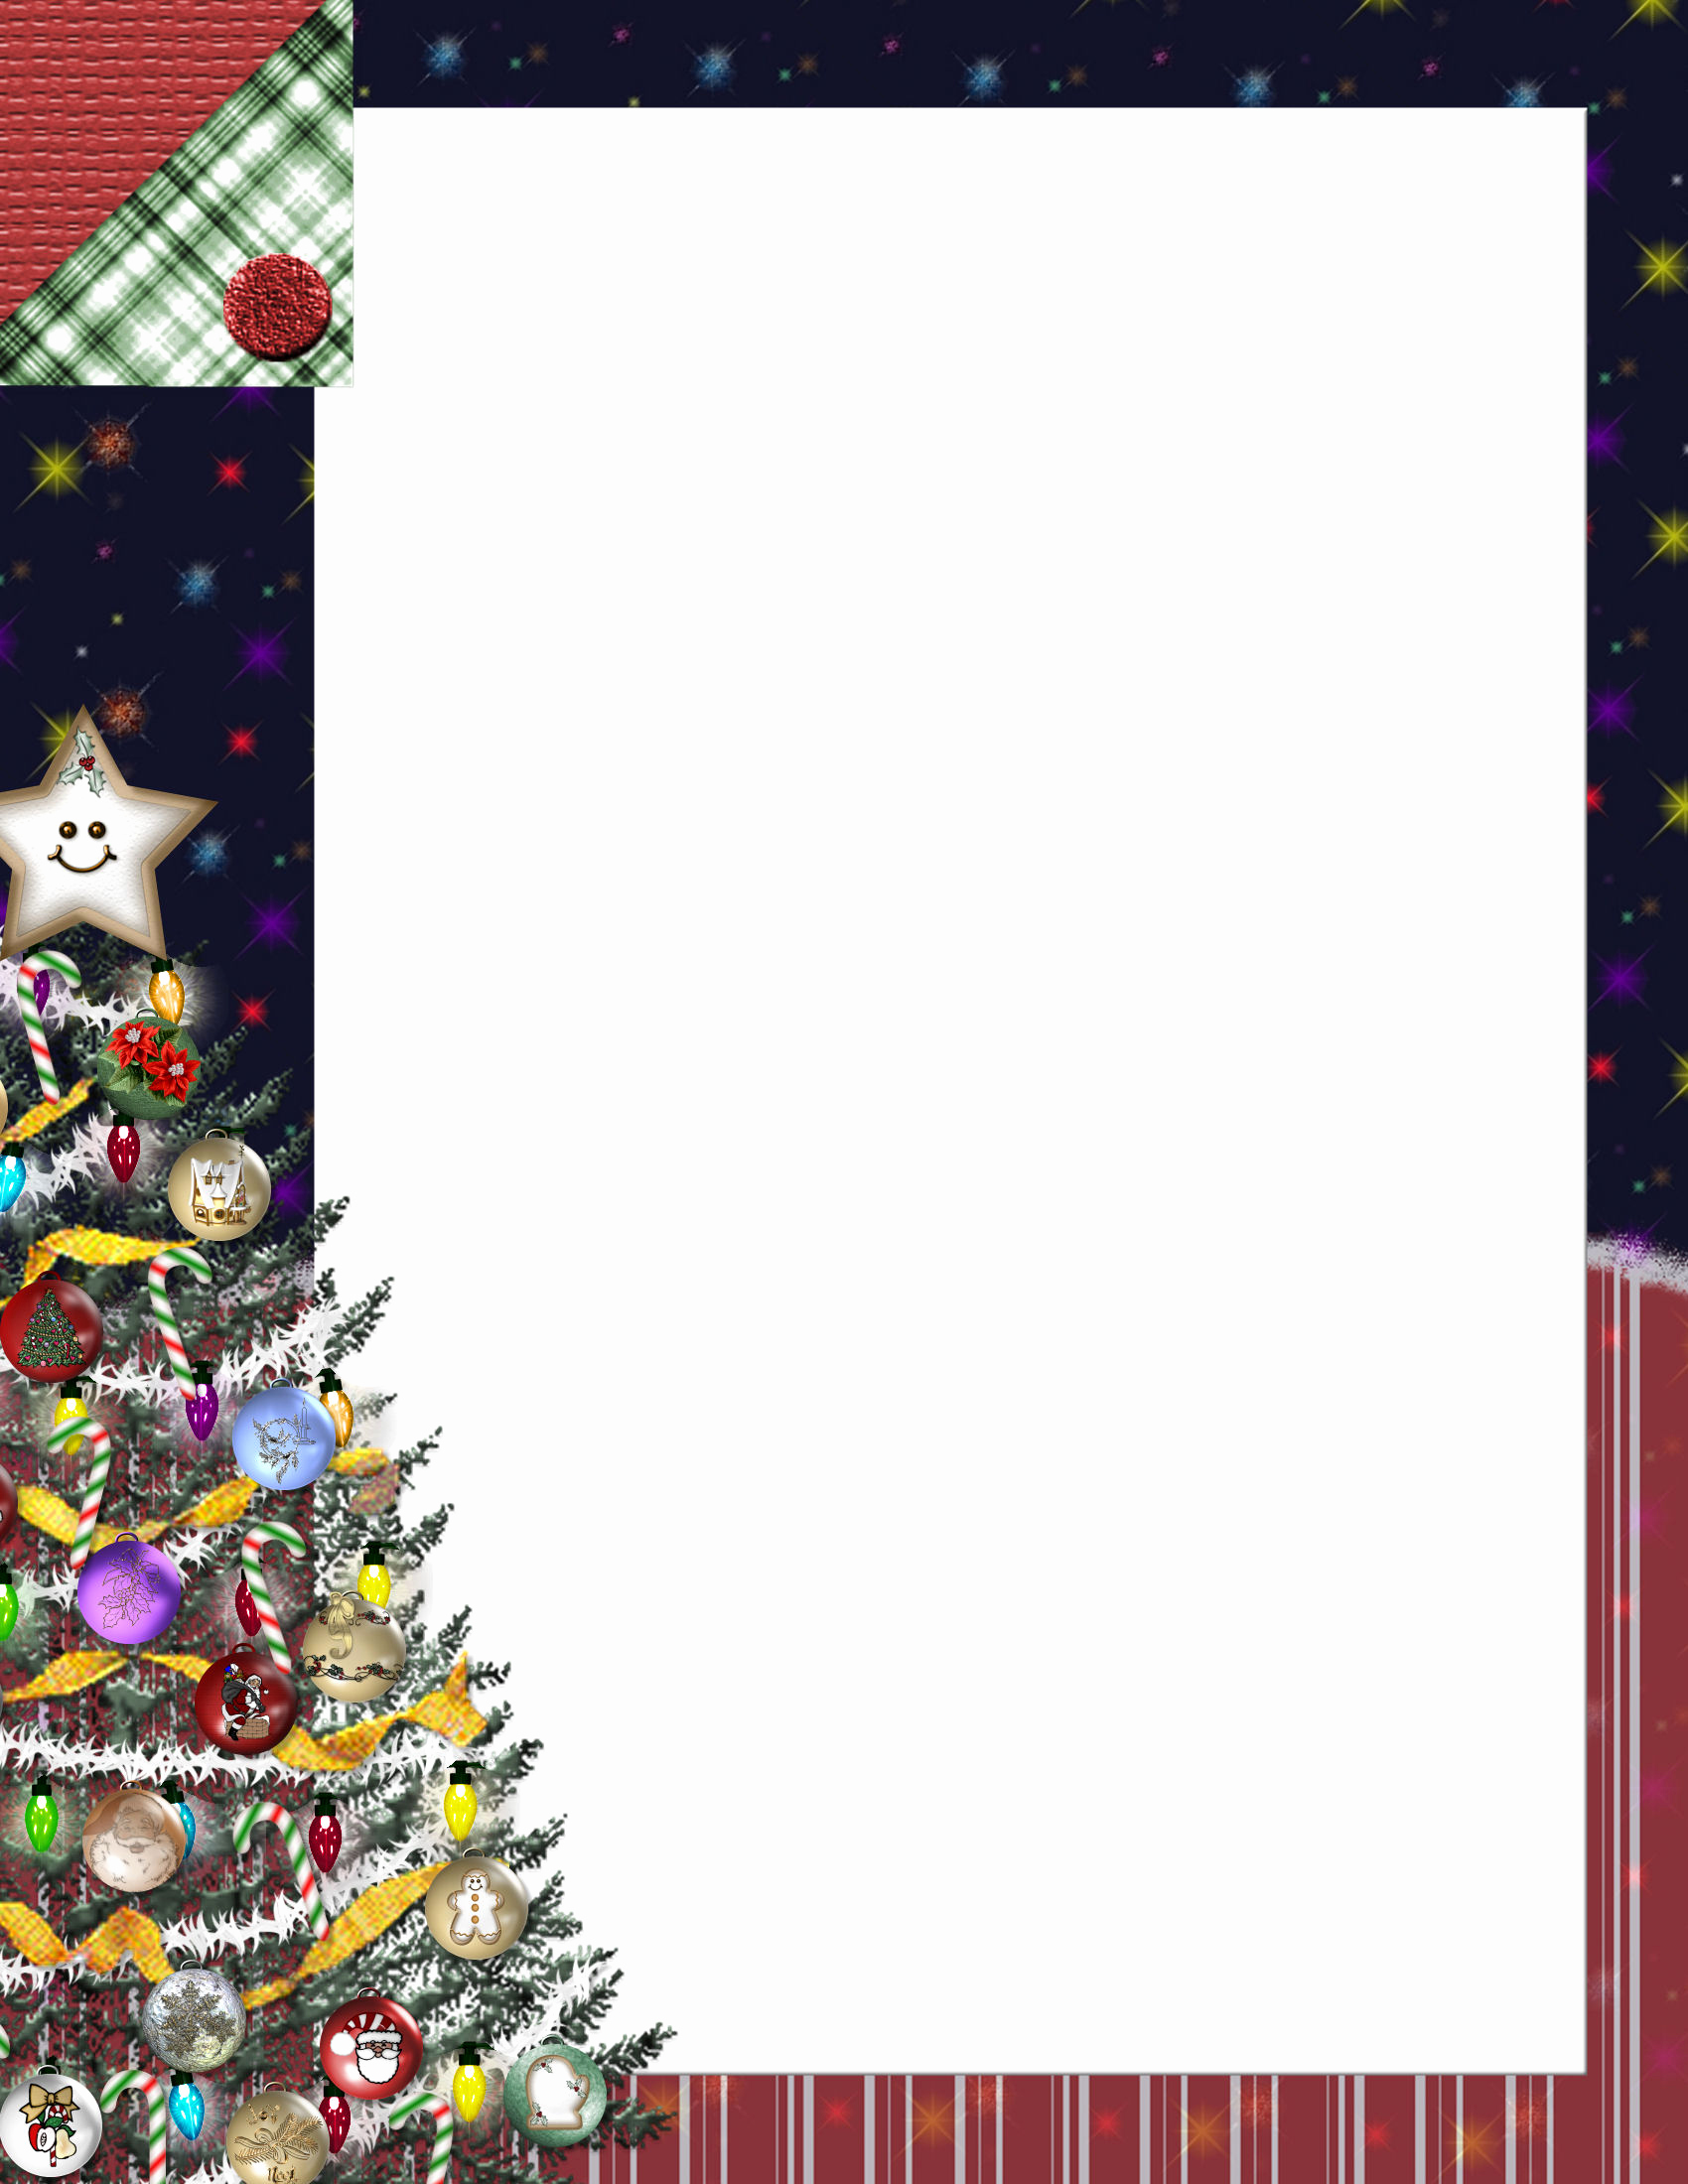 Free Christmas Stationery Templates Awesome Christmas 1 Free Stationery Template Downloads